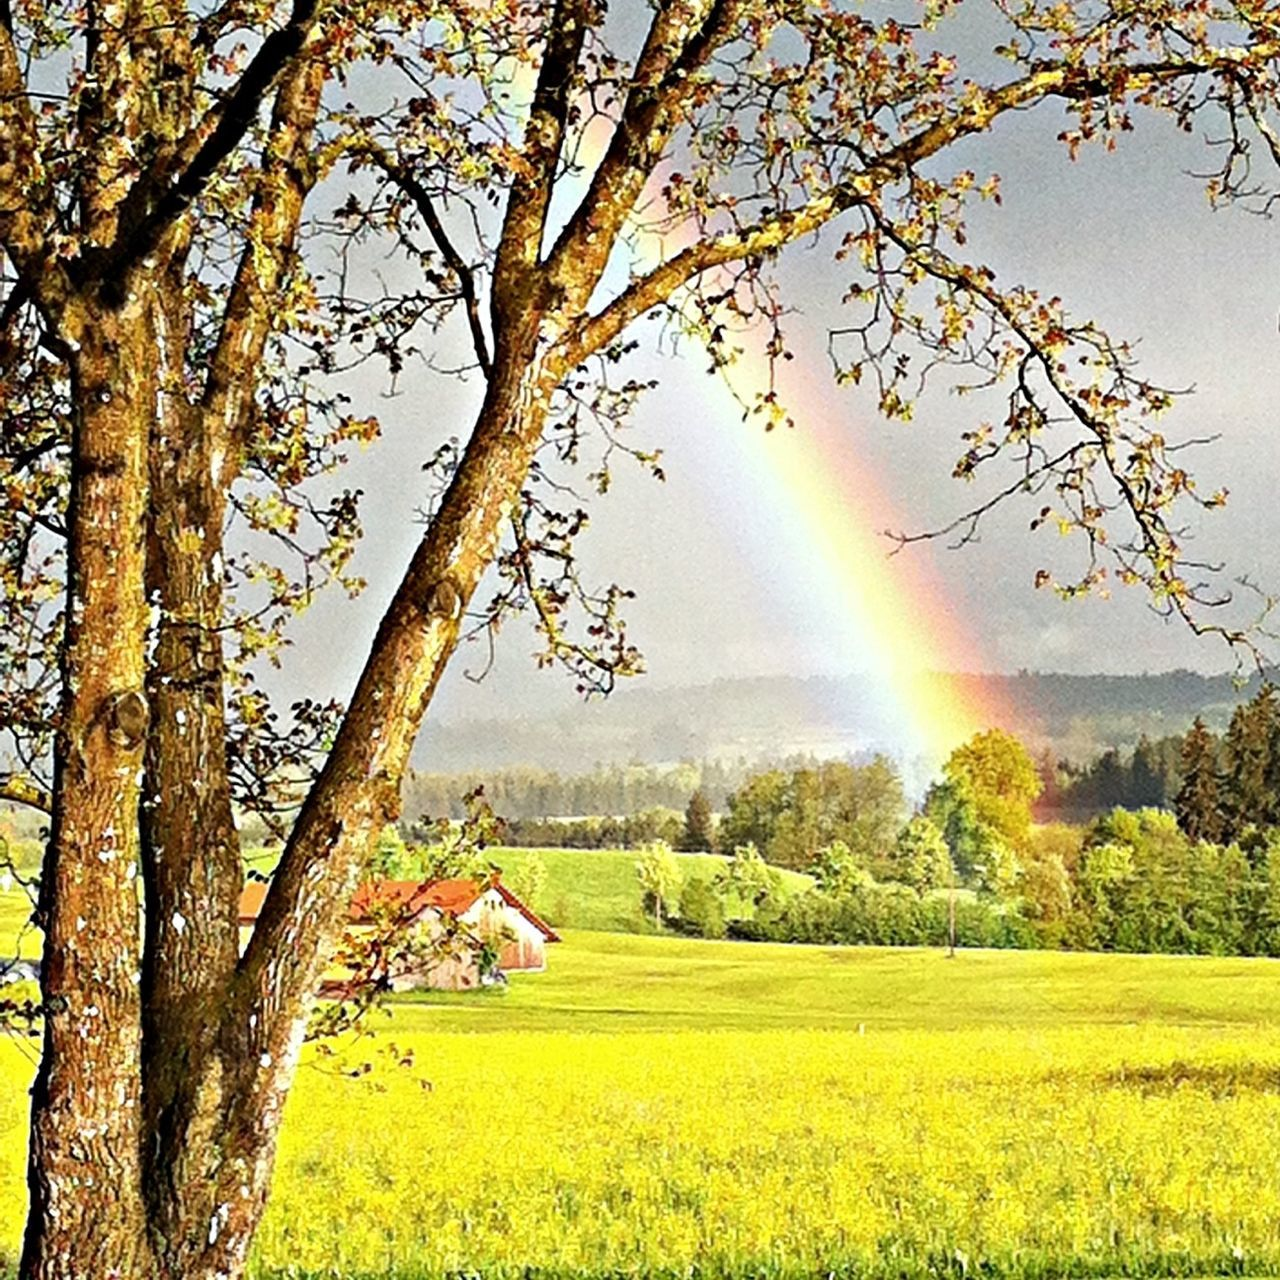 tree, nature, beauty in nature, rainbow, scenics, idyllic, tranquility, tranquil scene, field, day, growth, no people, landscape, double rainbow, green color, outdoors, rural scene, grass, sky